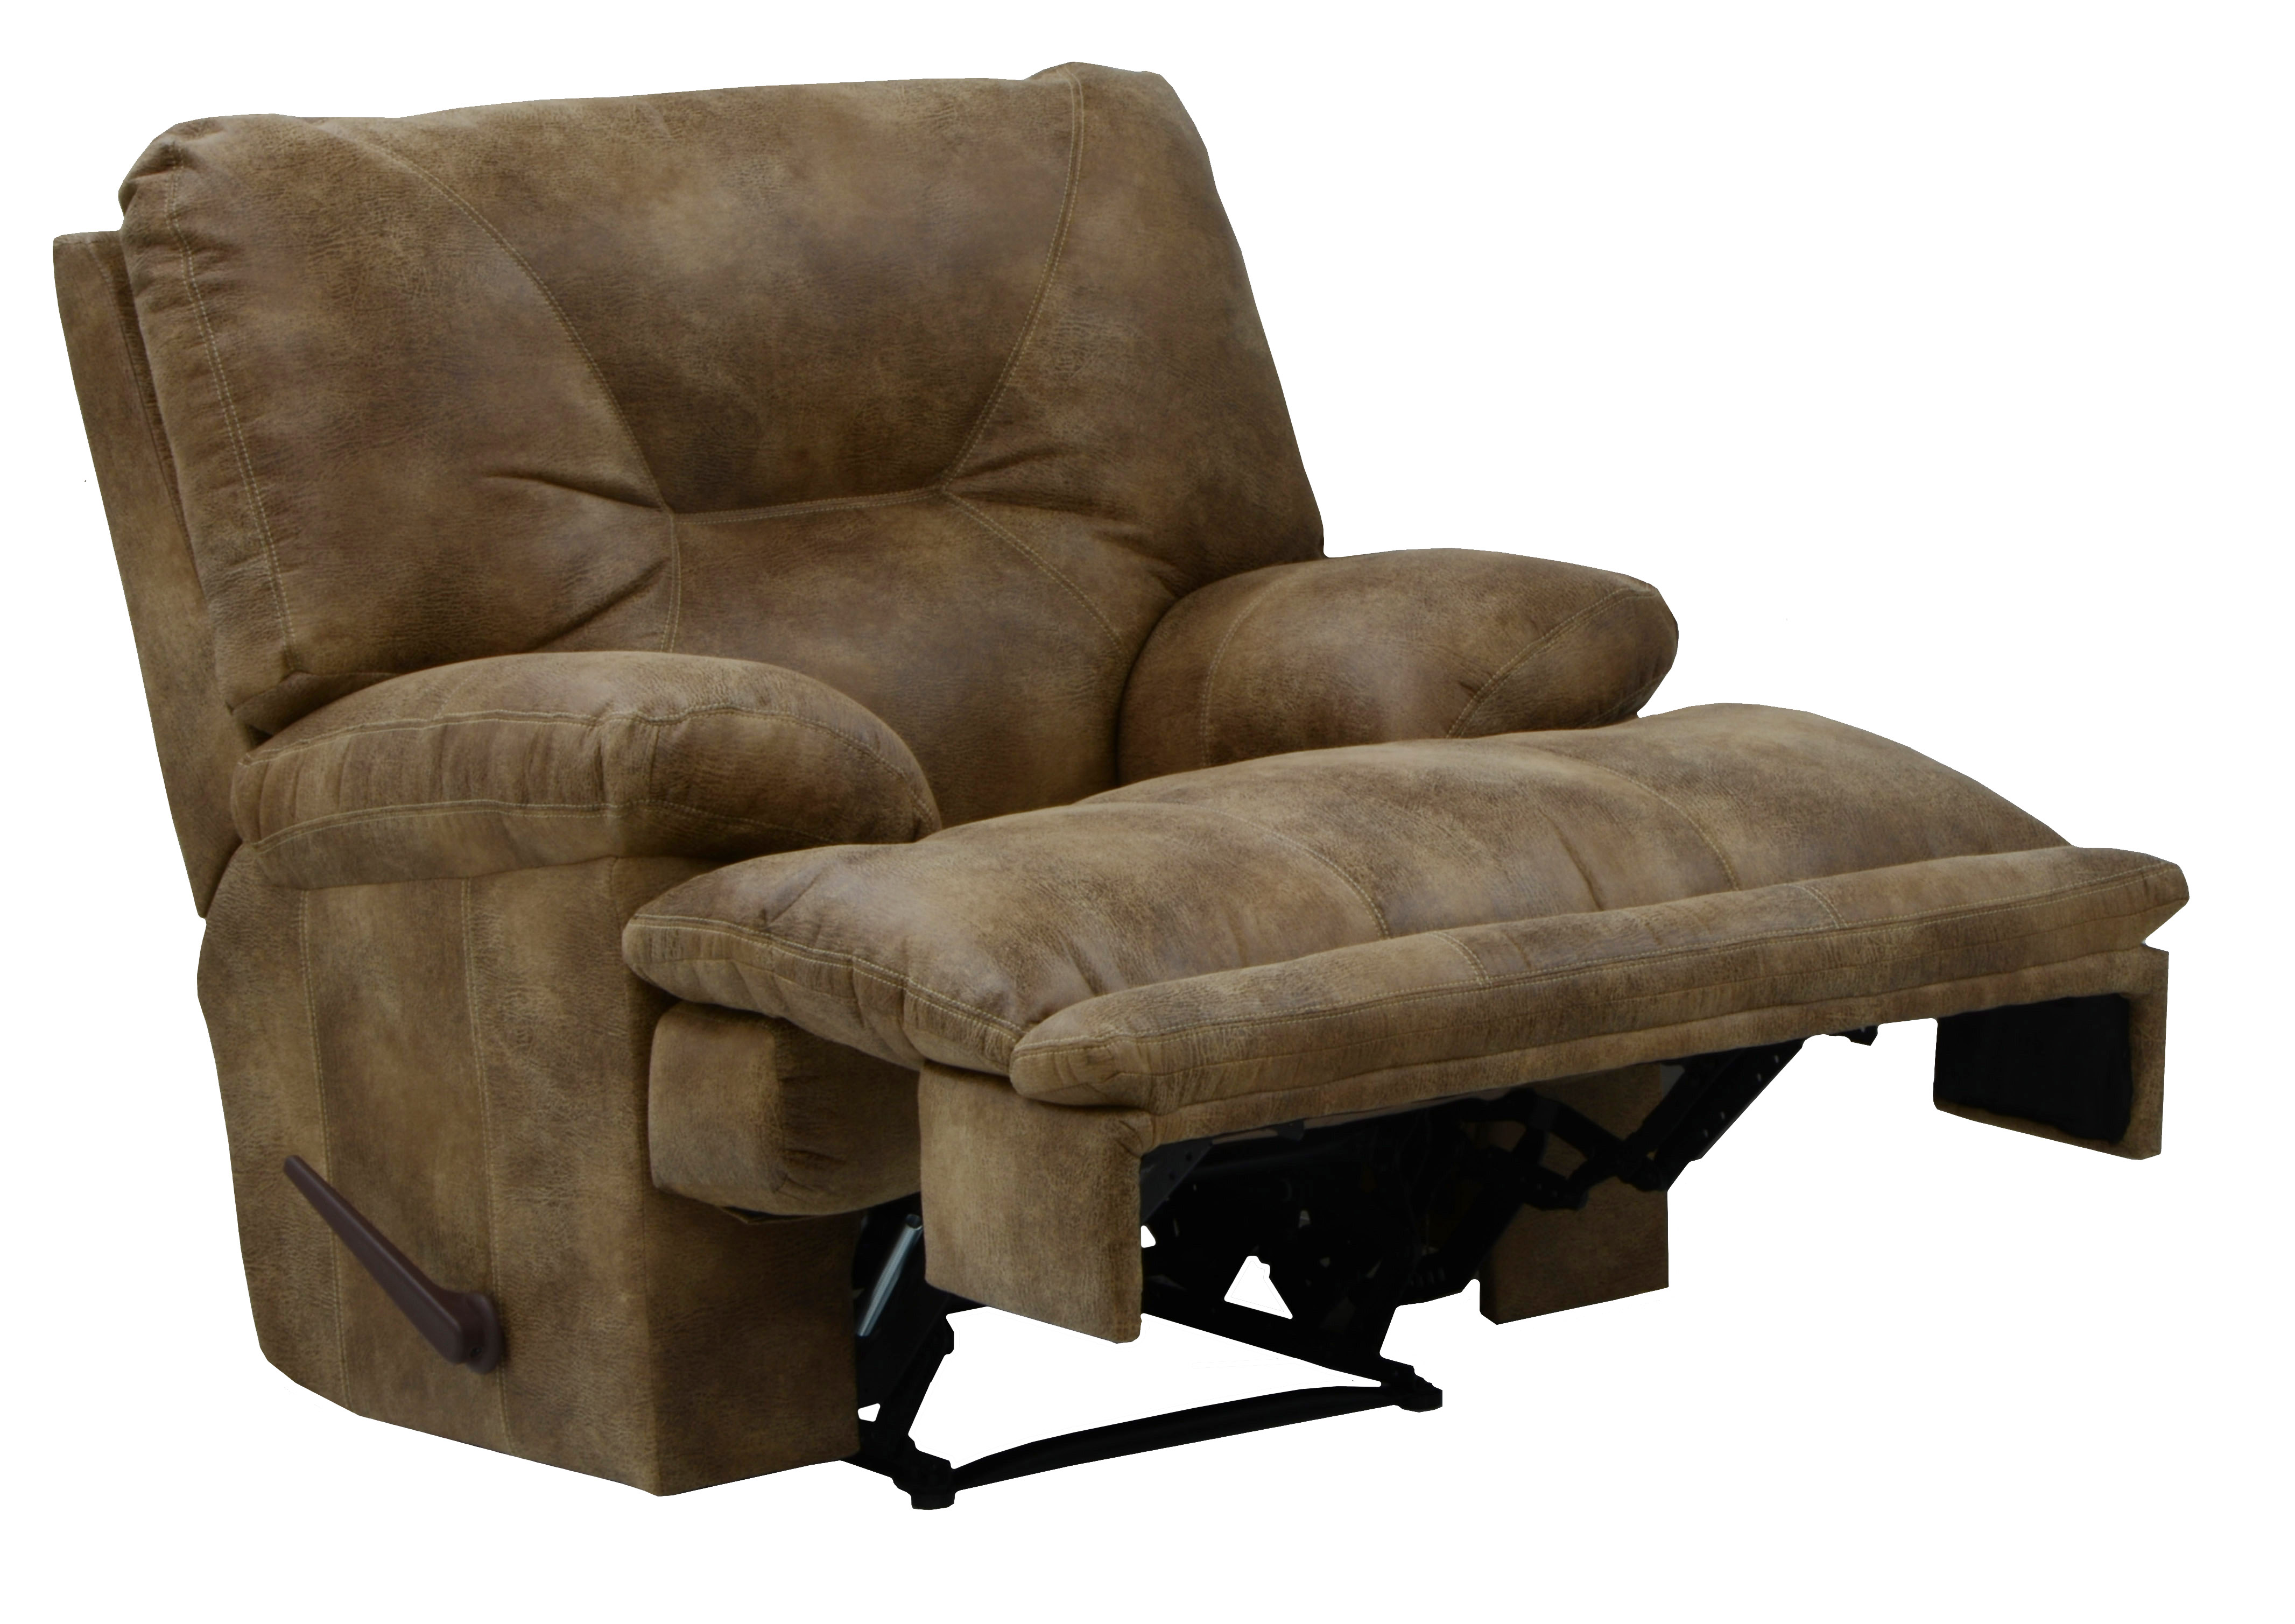 438 Voyager Recliner in Brandy